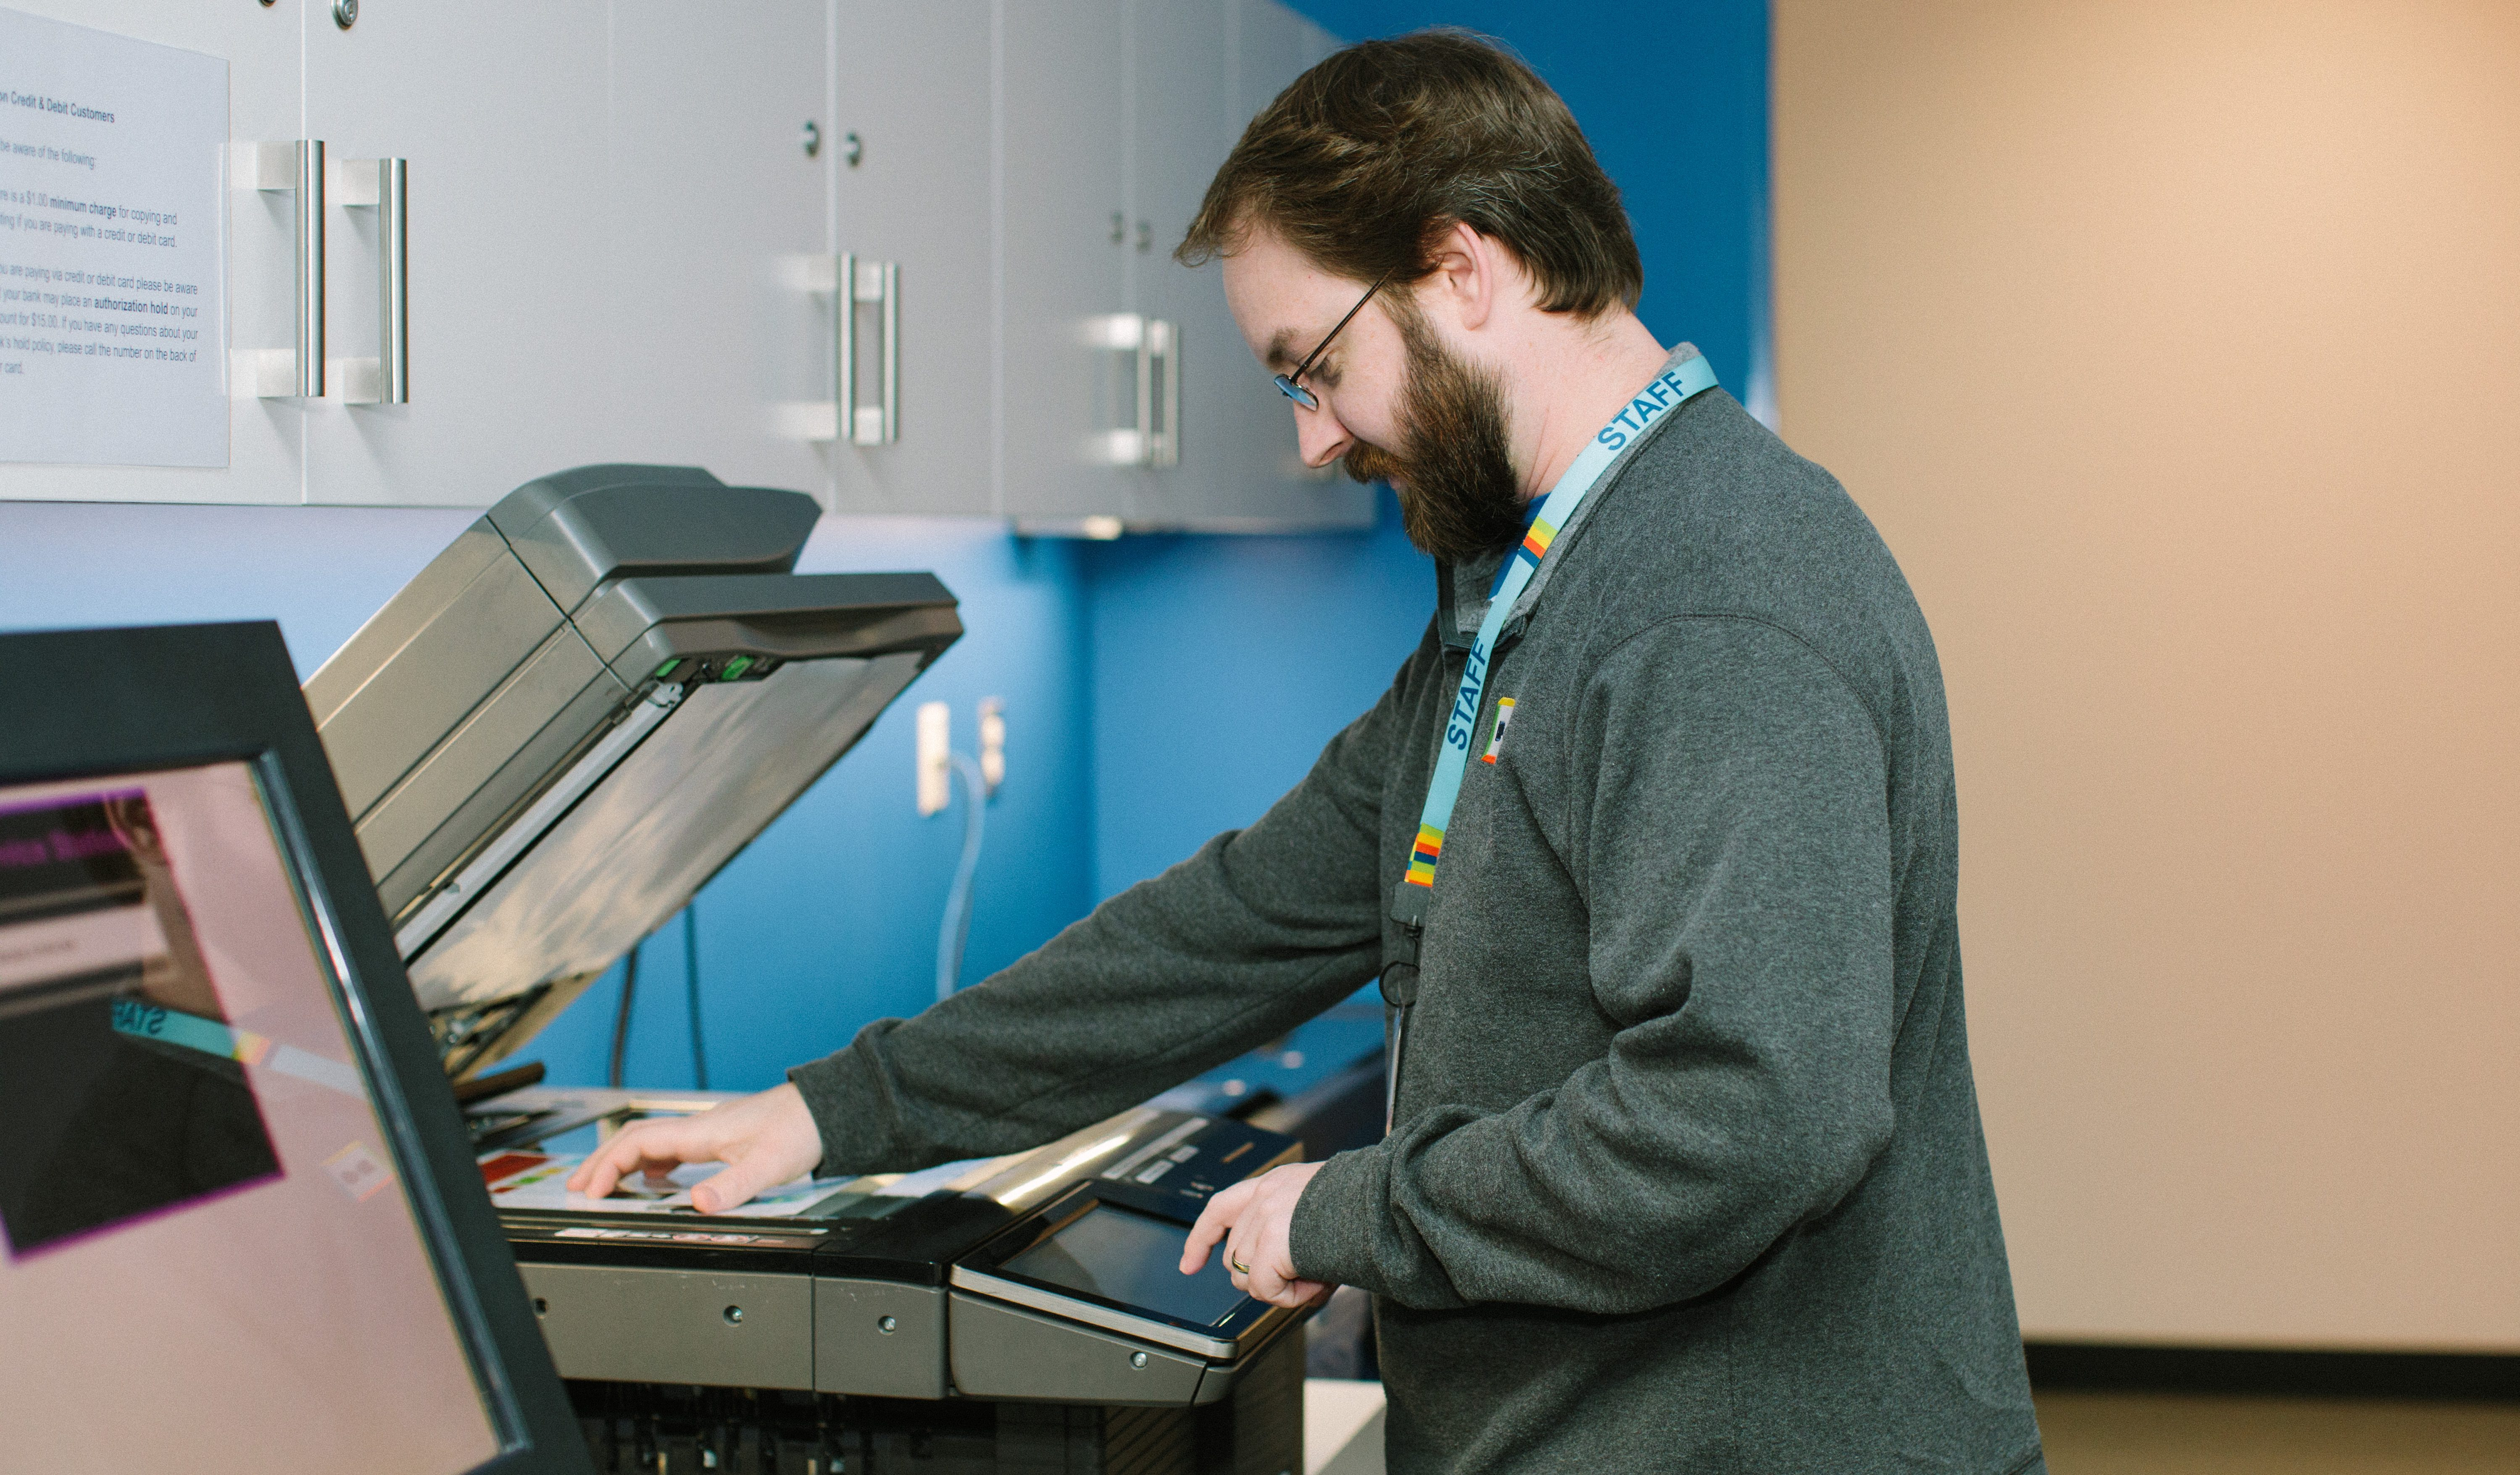 Printing and Scanning - Do Space